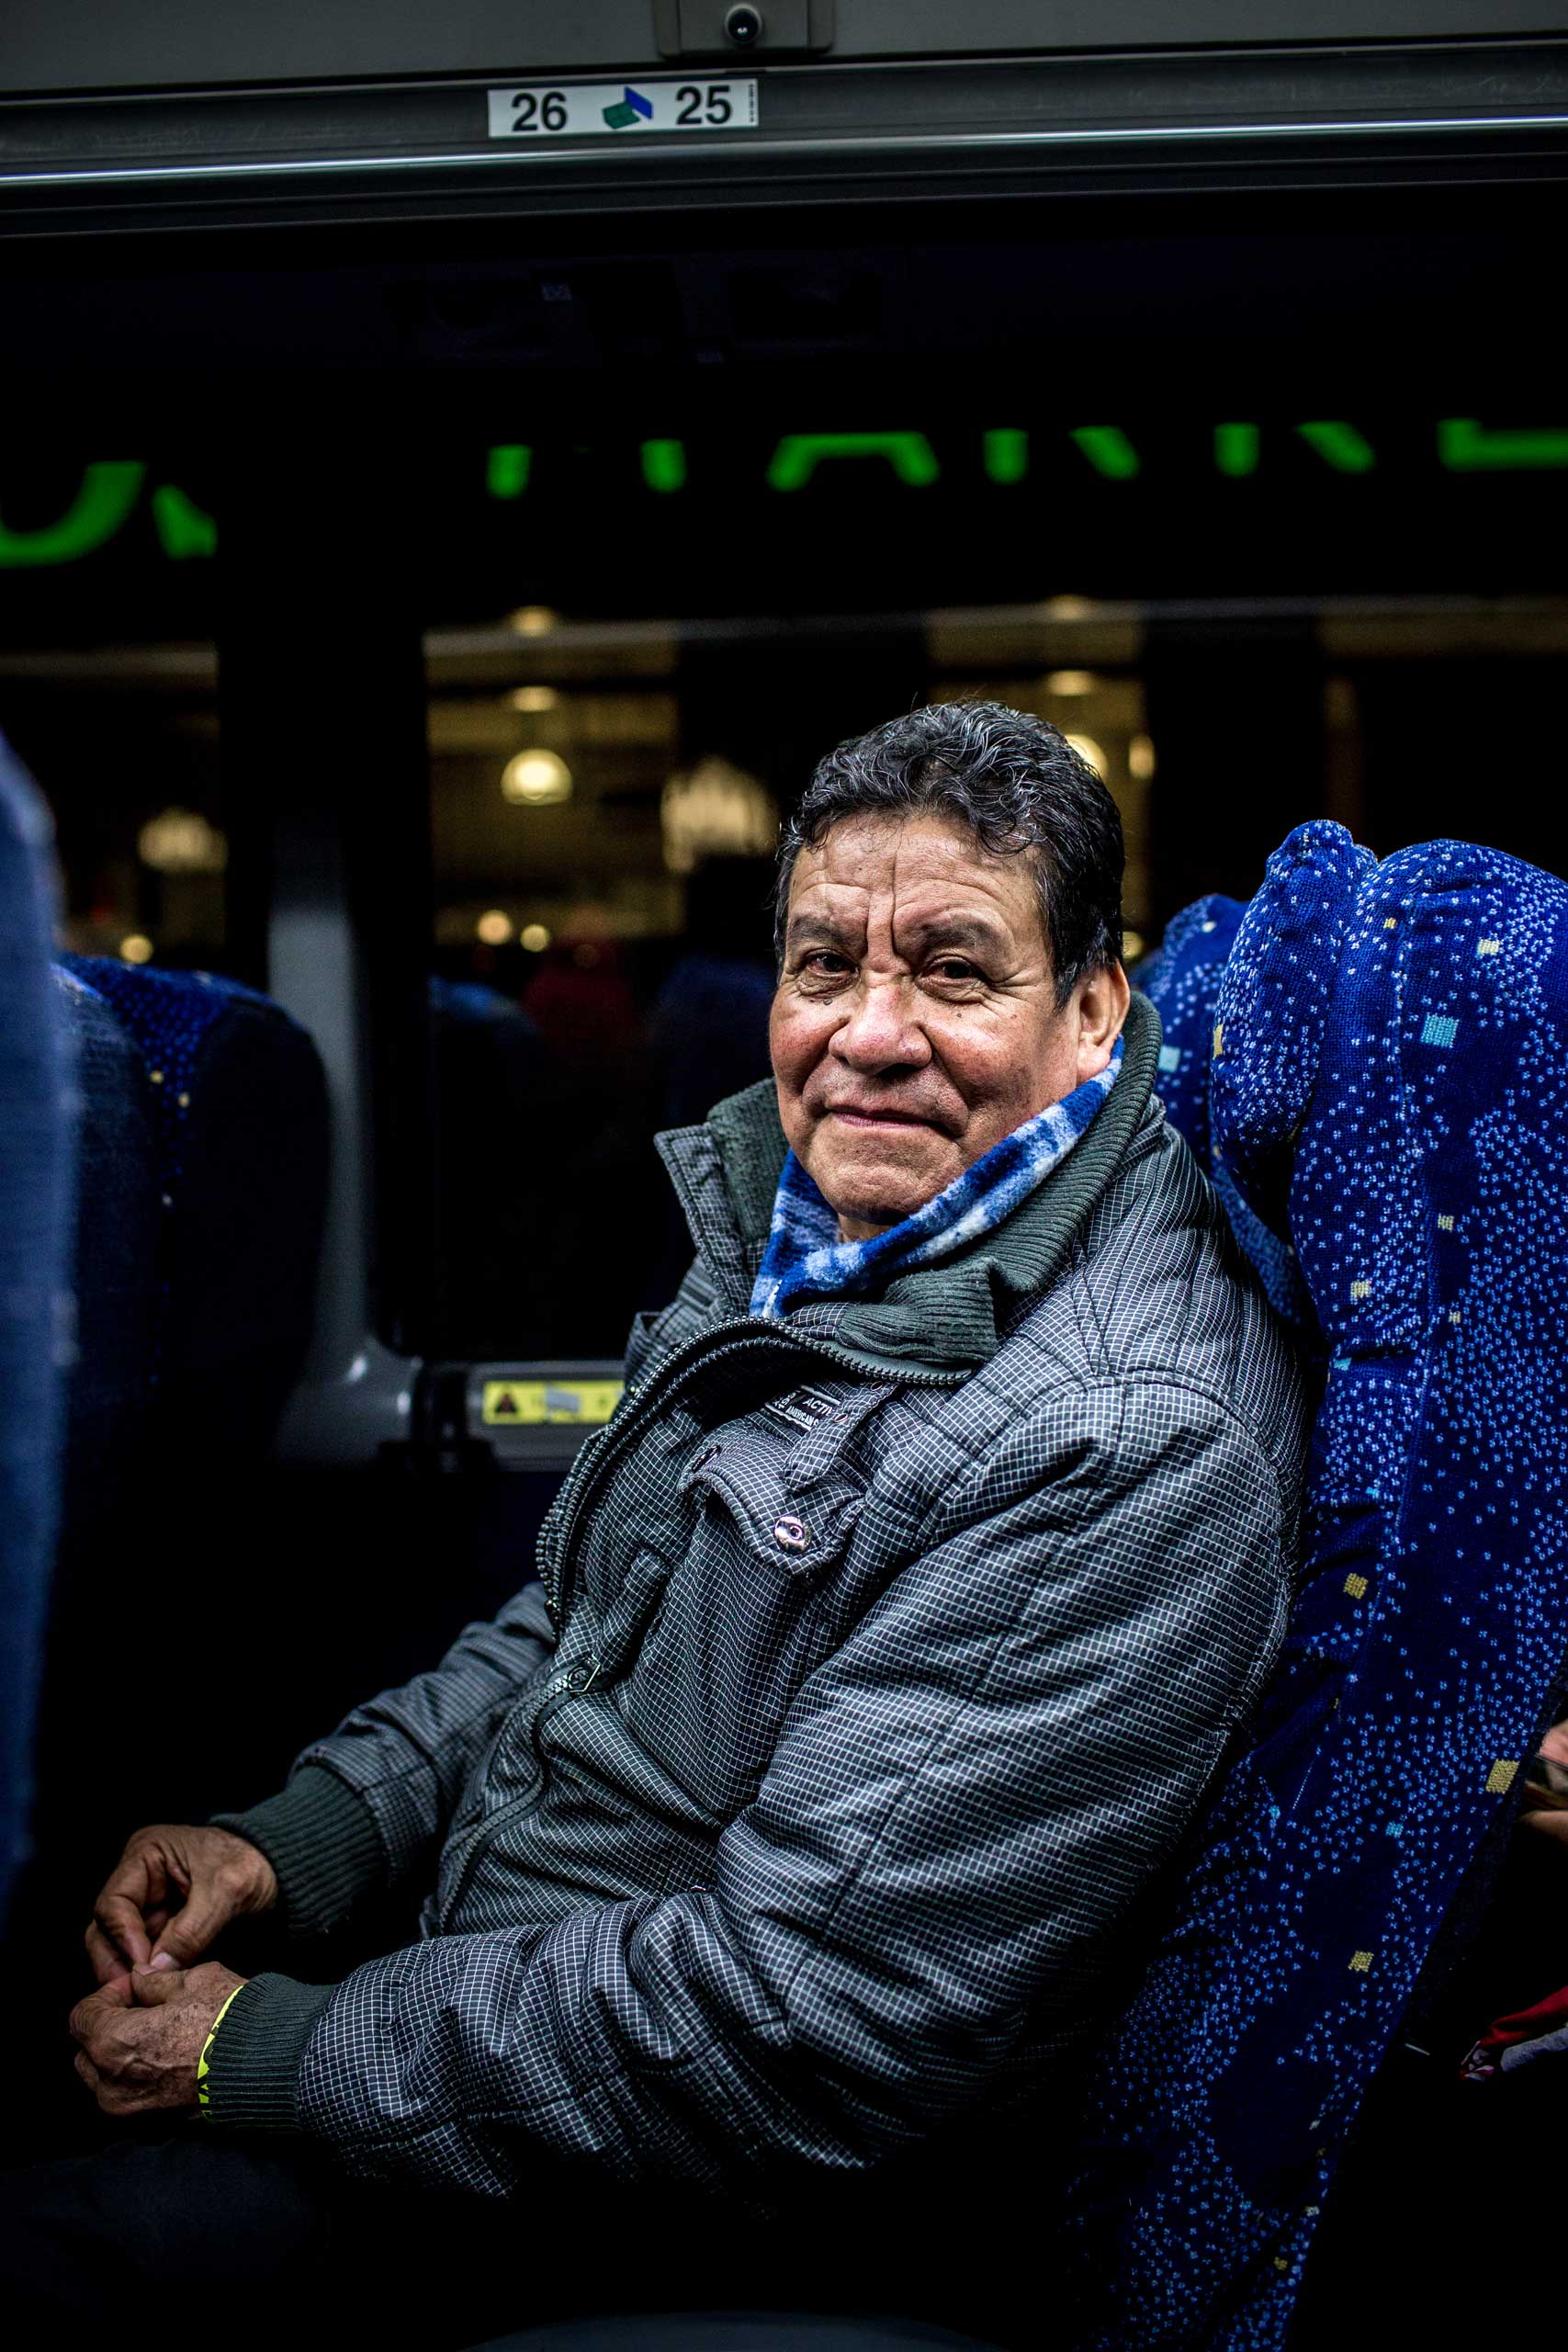 1:42 AM:  Poli Cortez, a plant seller originally from Mexico, poses for a portrait. It's my duty to continue to struggle for the people,  he says when I ask him why he's going to Washington.